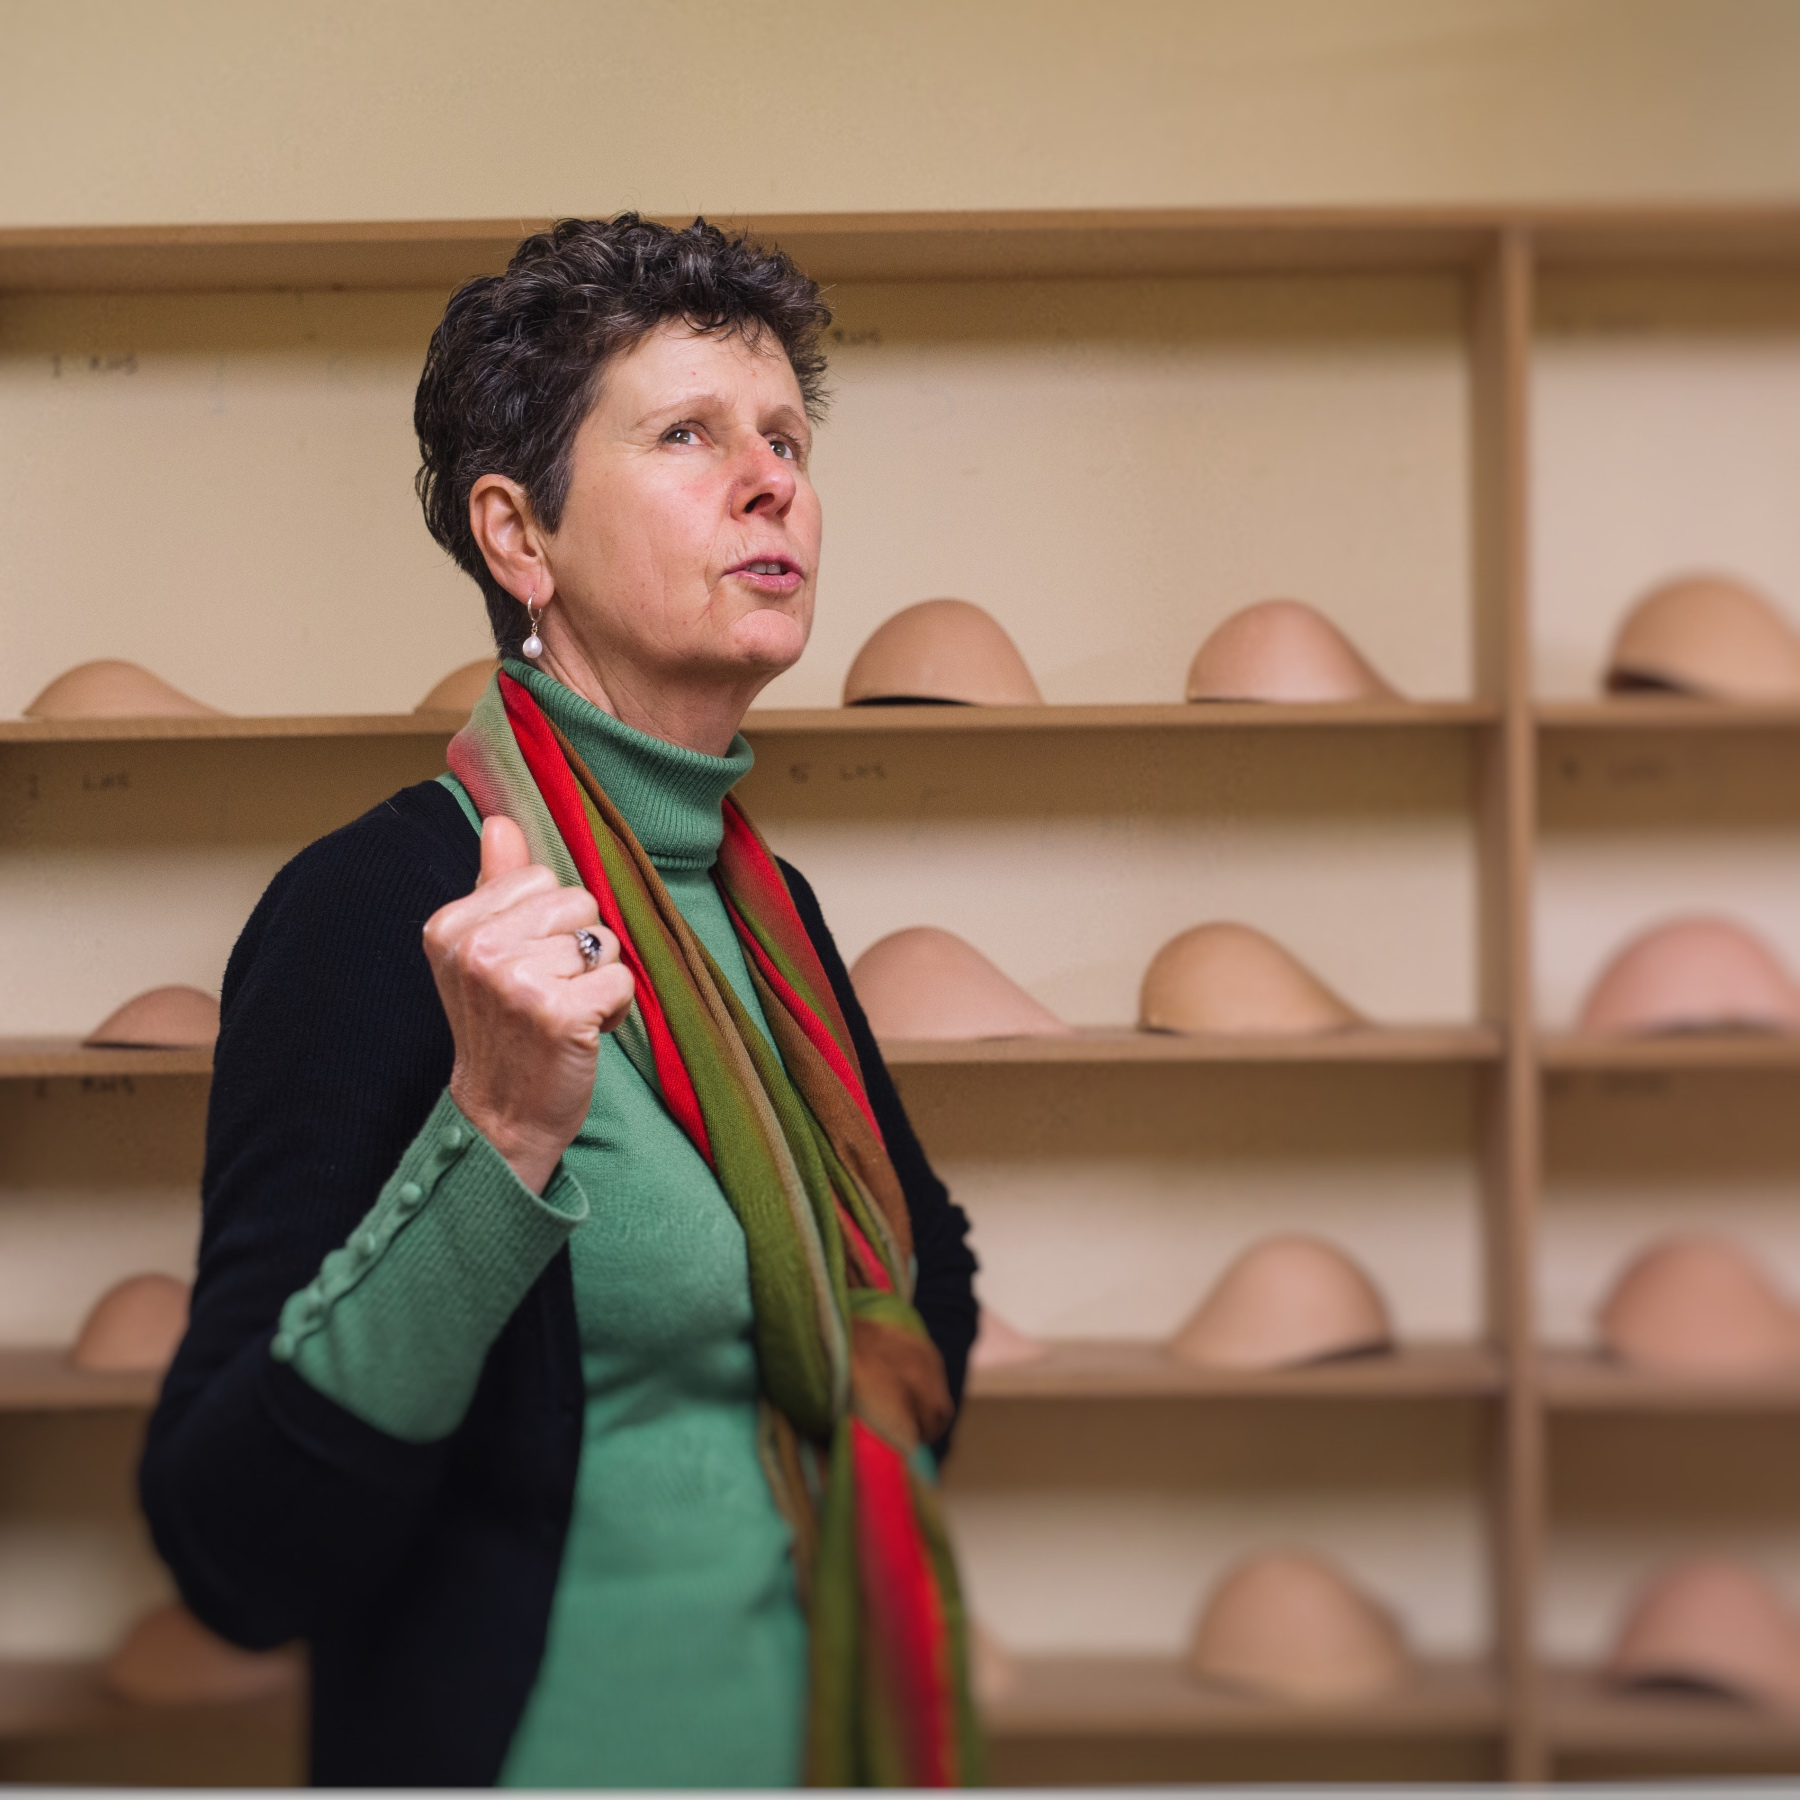 Perfect Again is the maker of prosthetic breasts in Portarlington, Victoria